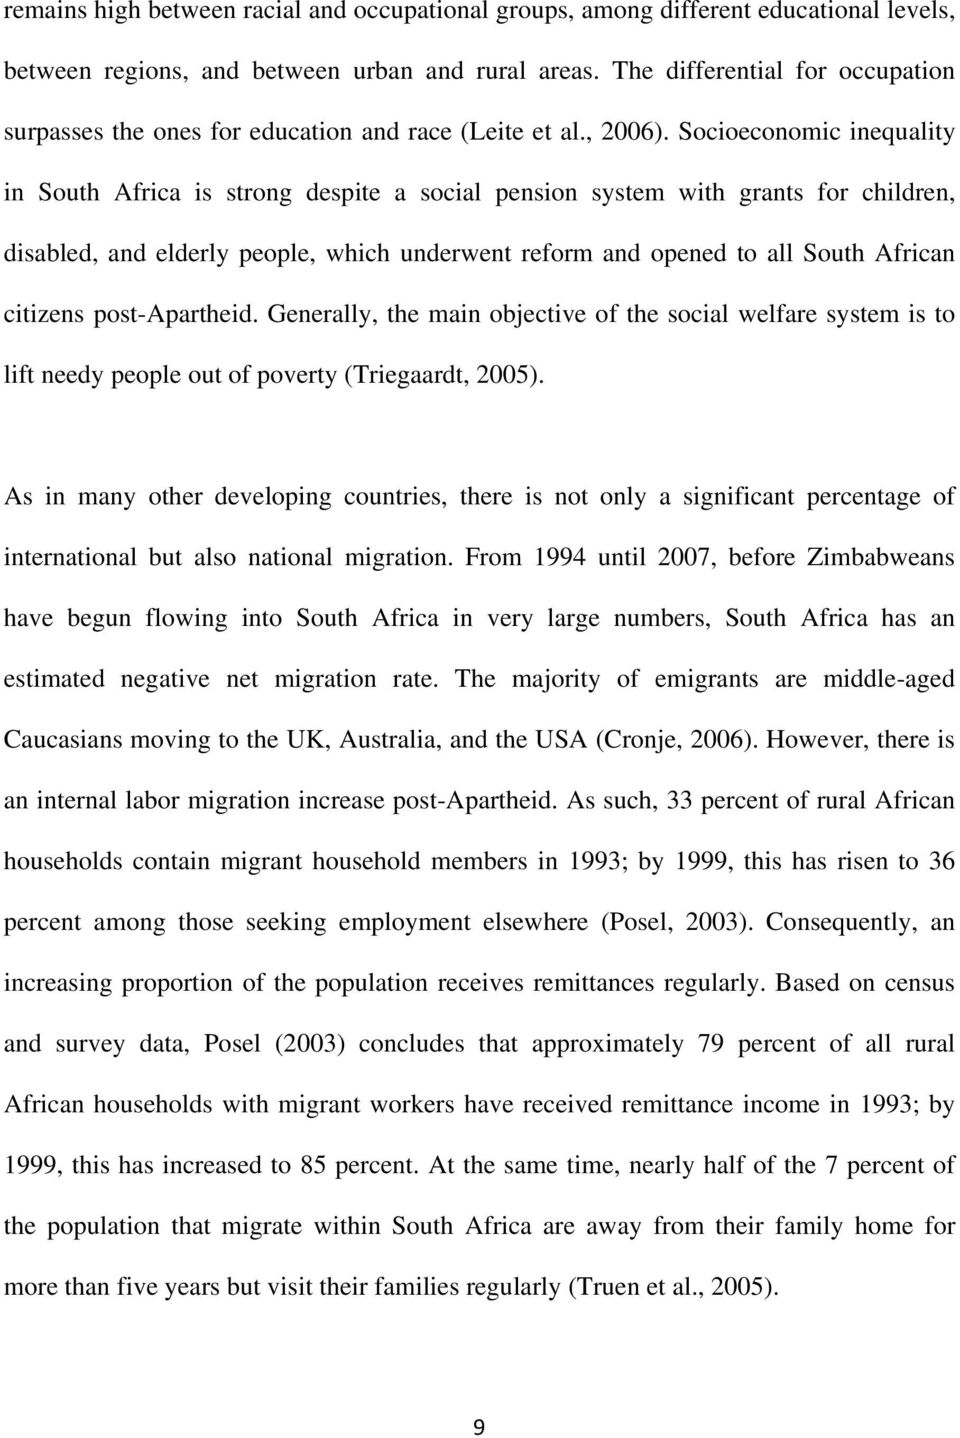 Socioeconomic inequality in South Africa is strong despite a social pension system with grants for children, disabled, and elderly people, which underwent reform and opened to all South African